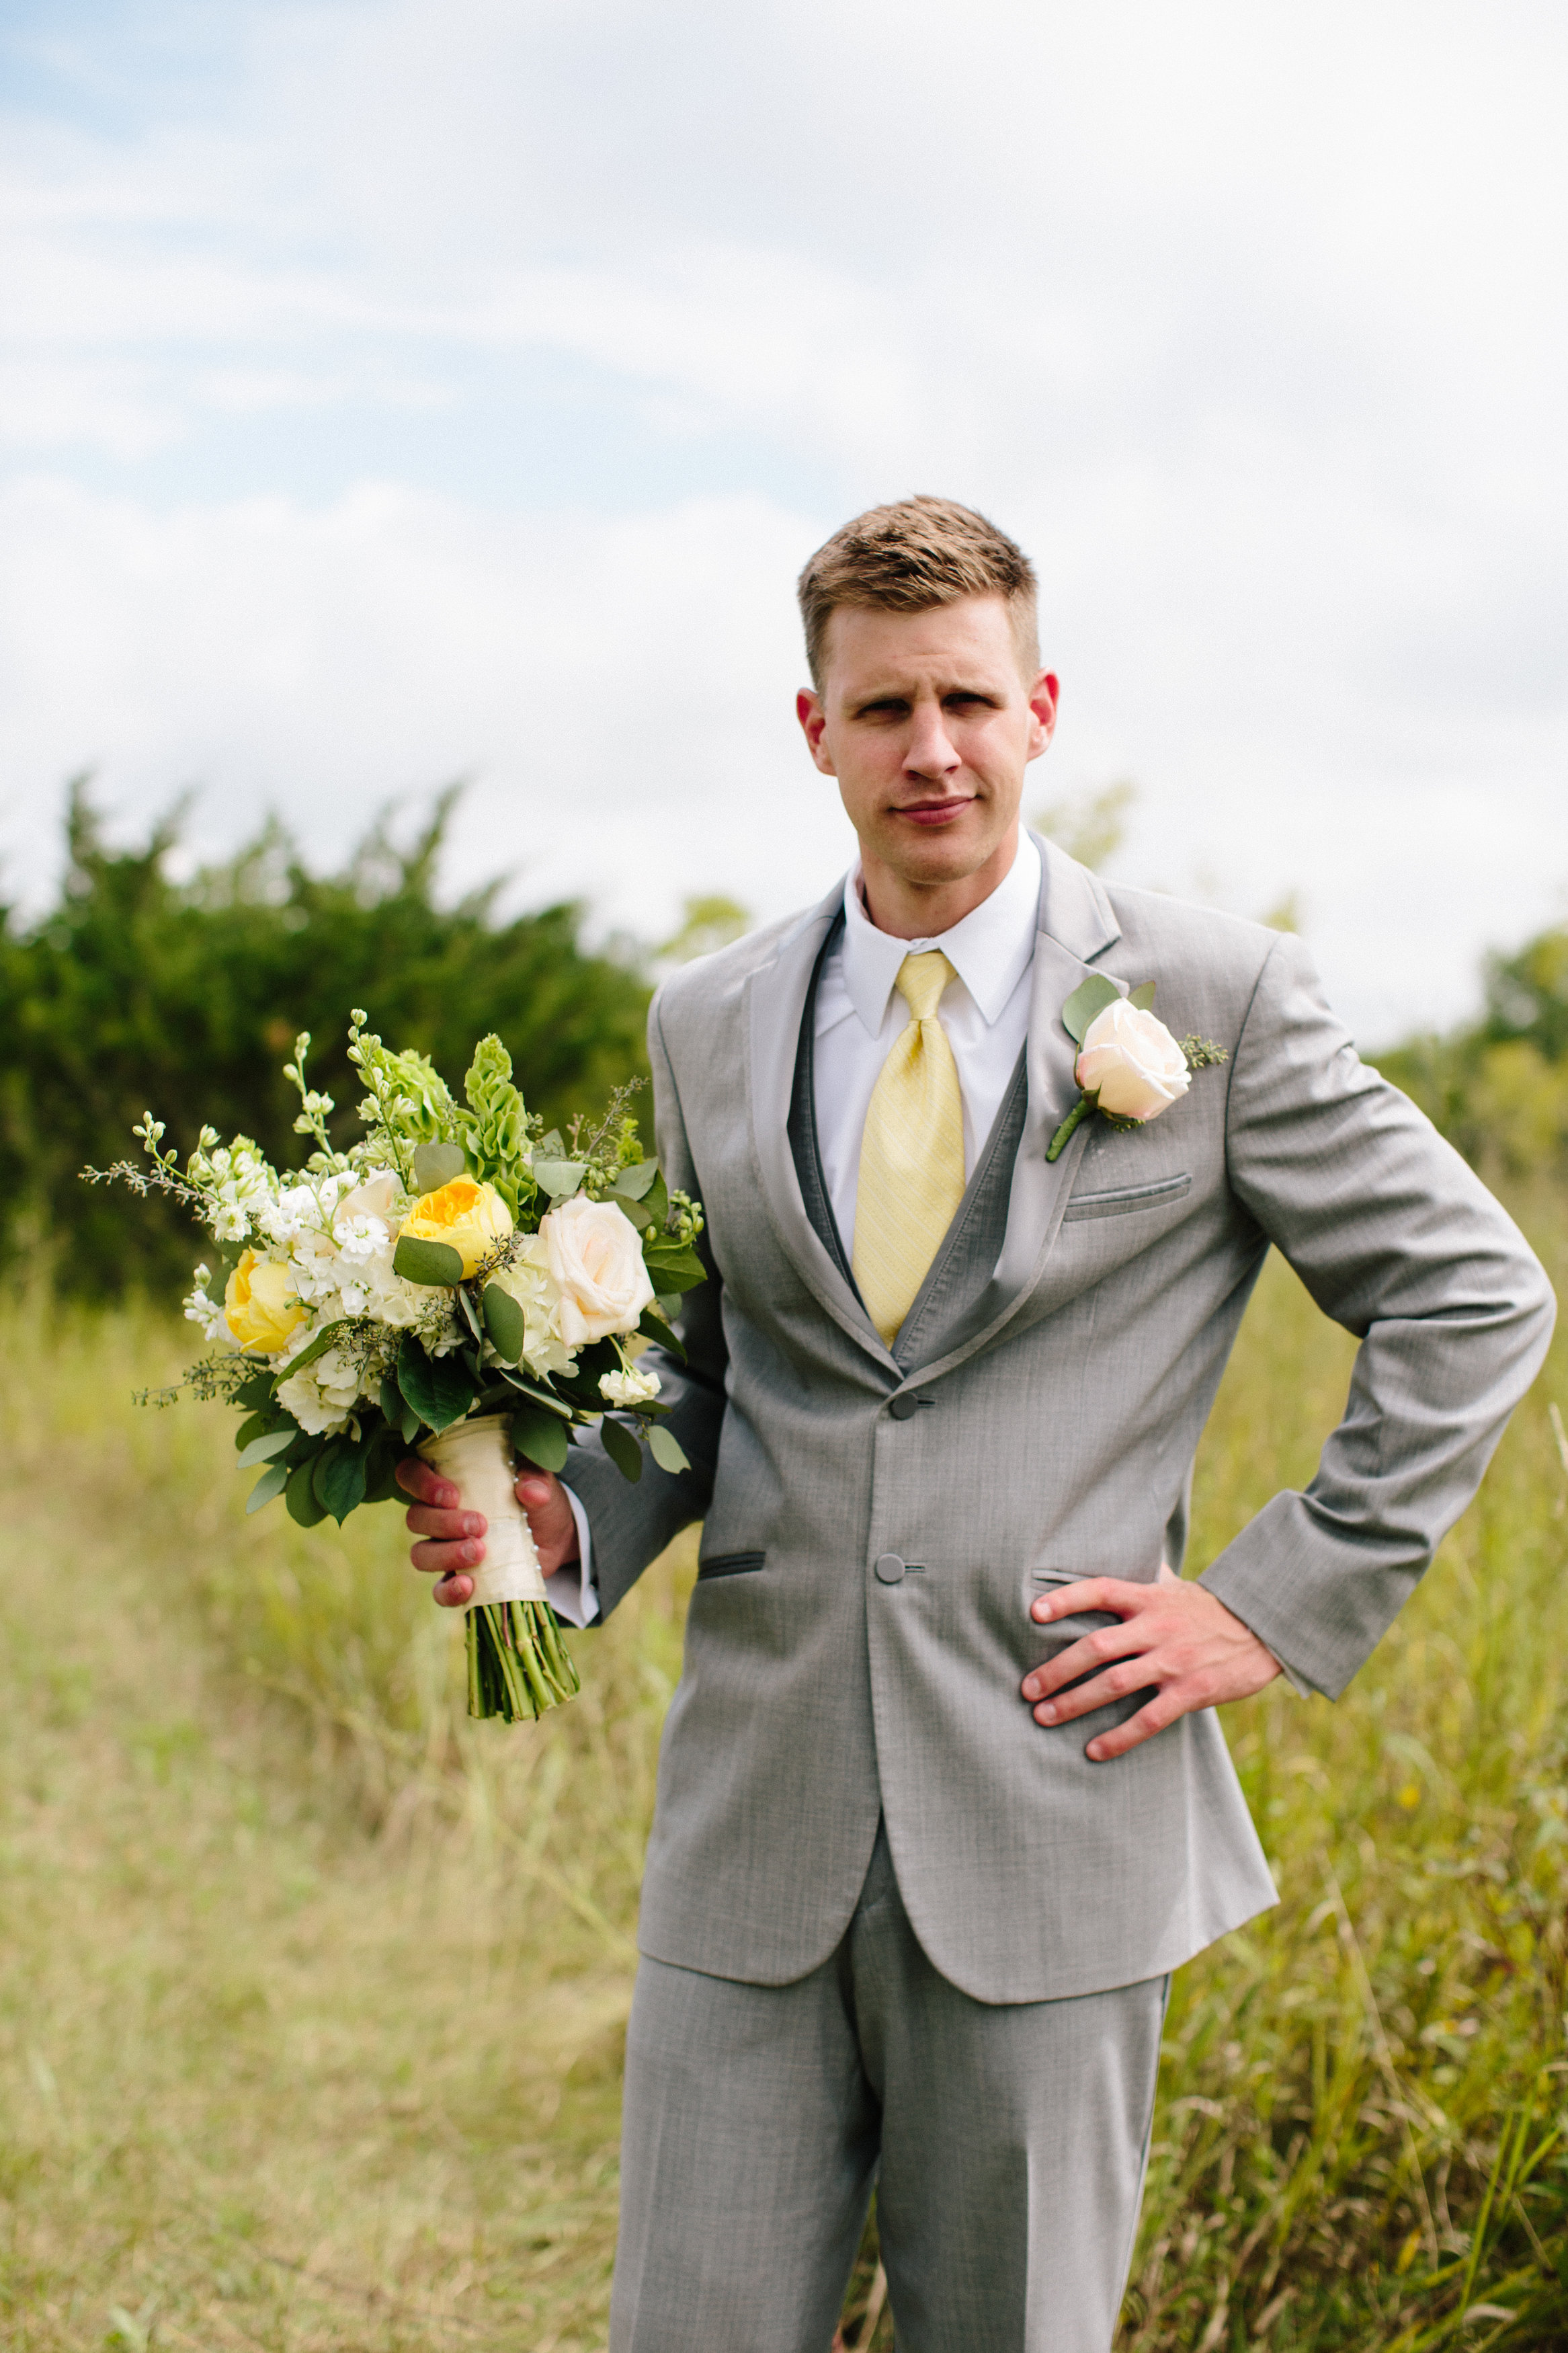 Notice Shean's confidence.....He's not ashamed to pose for this shot holding his brides lovely bouquet